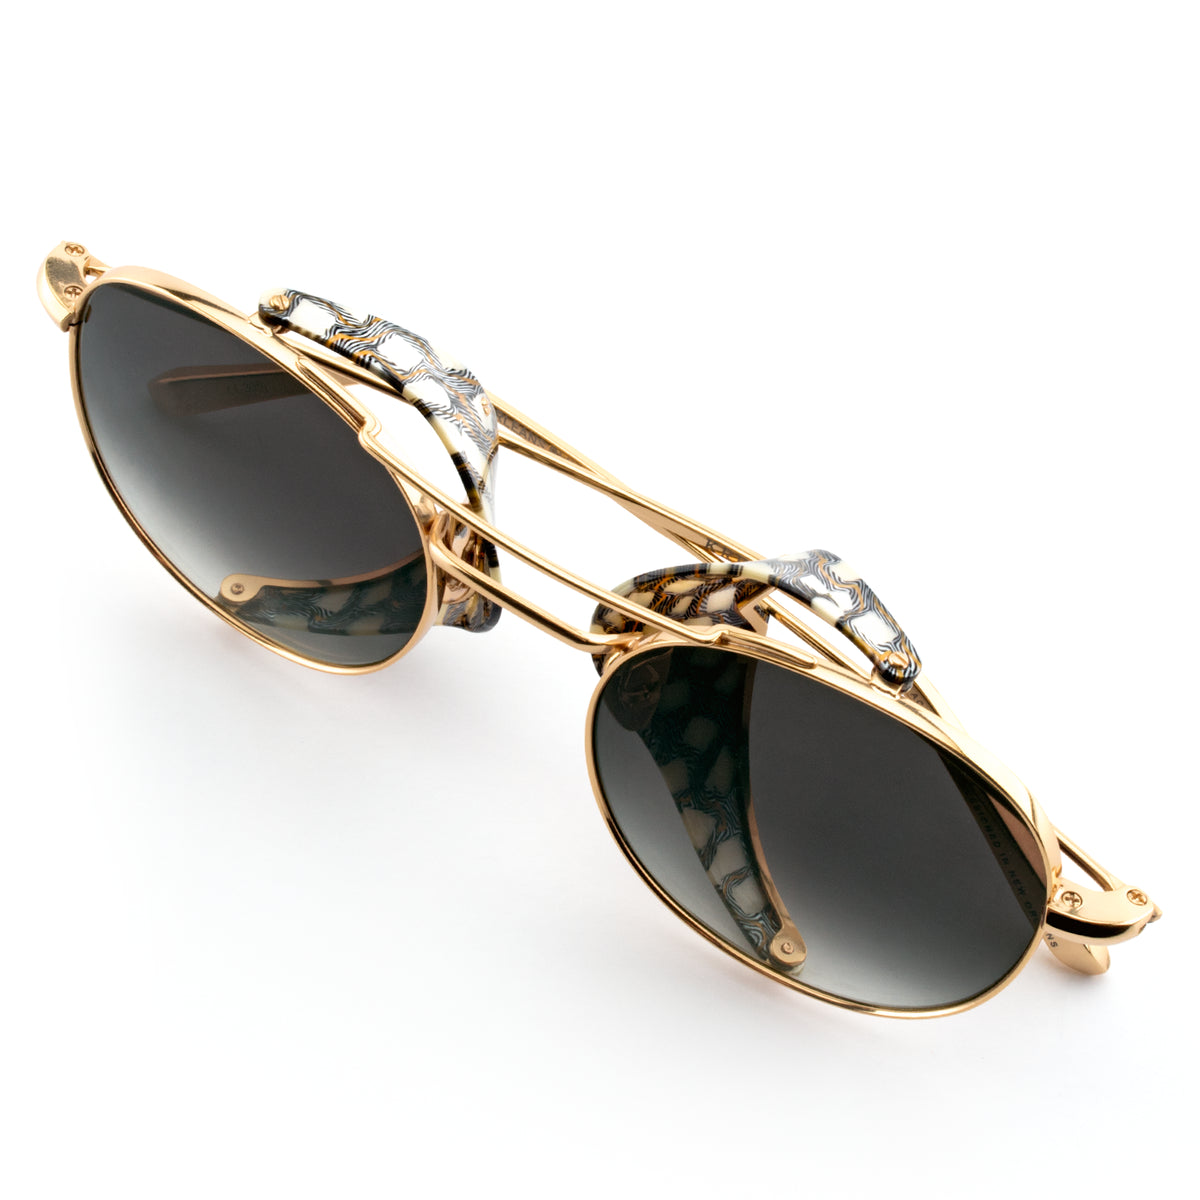 ORLEANS BLINKER | 24K Titanium + Stella - A seamless combination of premium metal and acetate side blinders for a truly modern pair of Sunglasses.